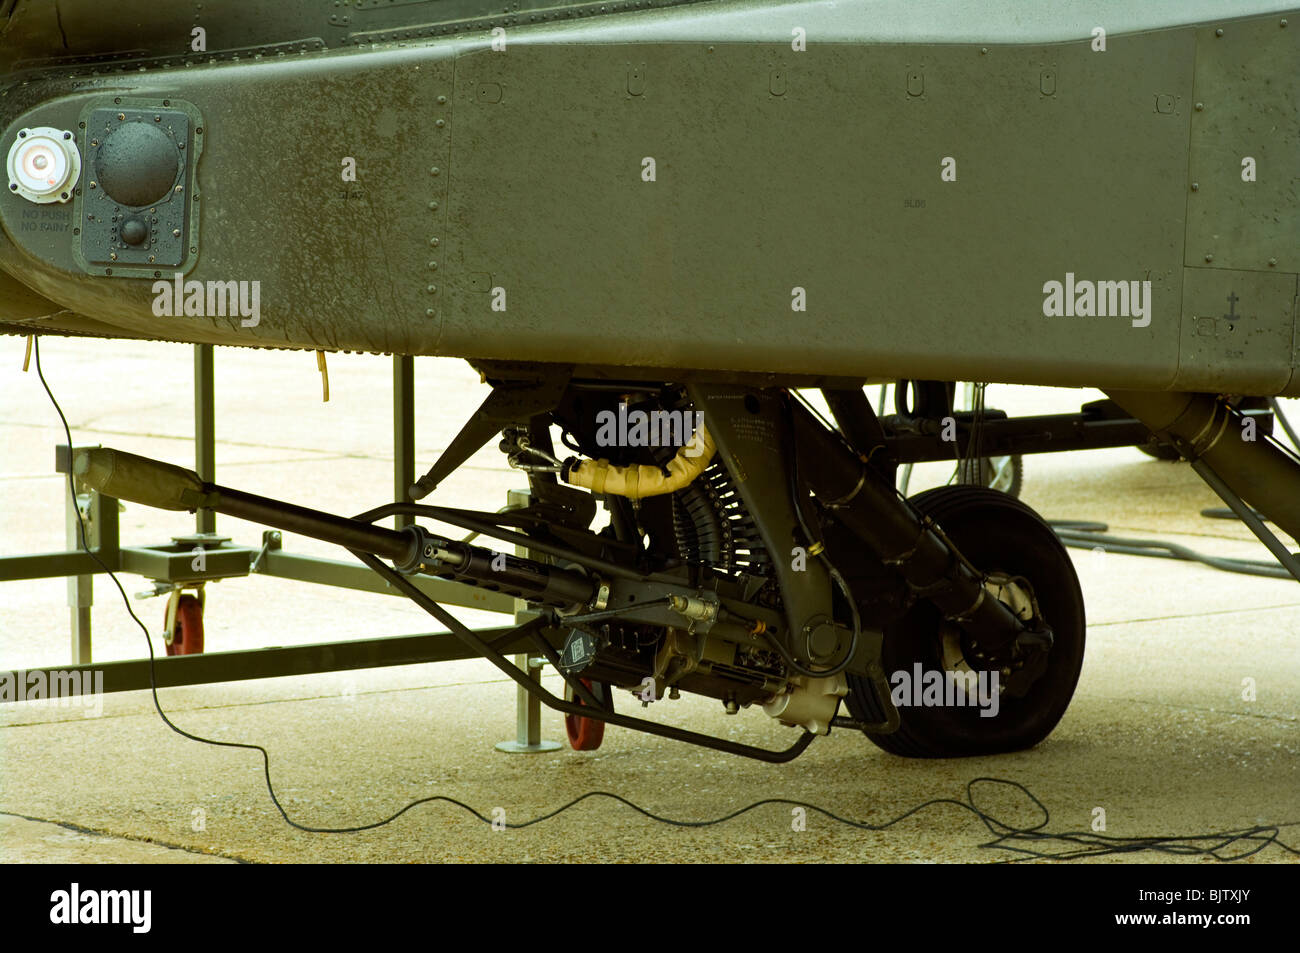 30mm Cannon On A British Army Westland Attack Helicopter WAH-64 MK1 Apache Longbow - Stock Image